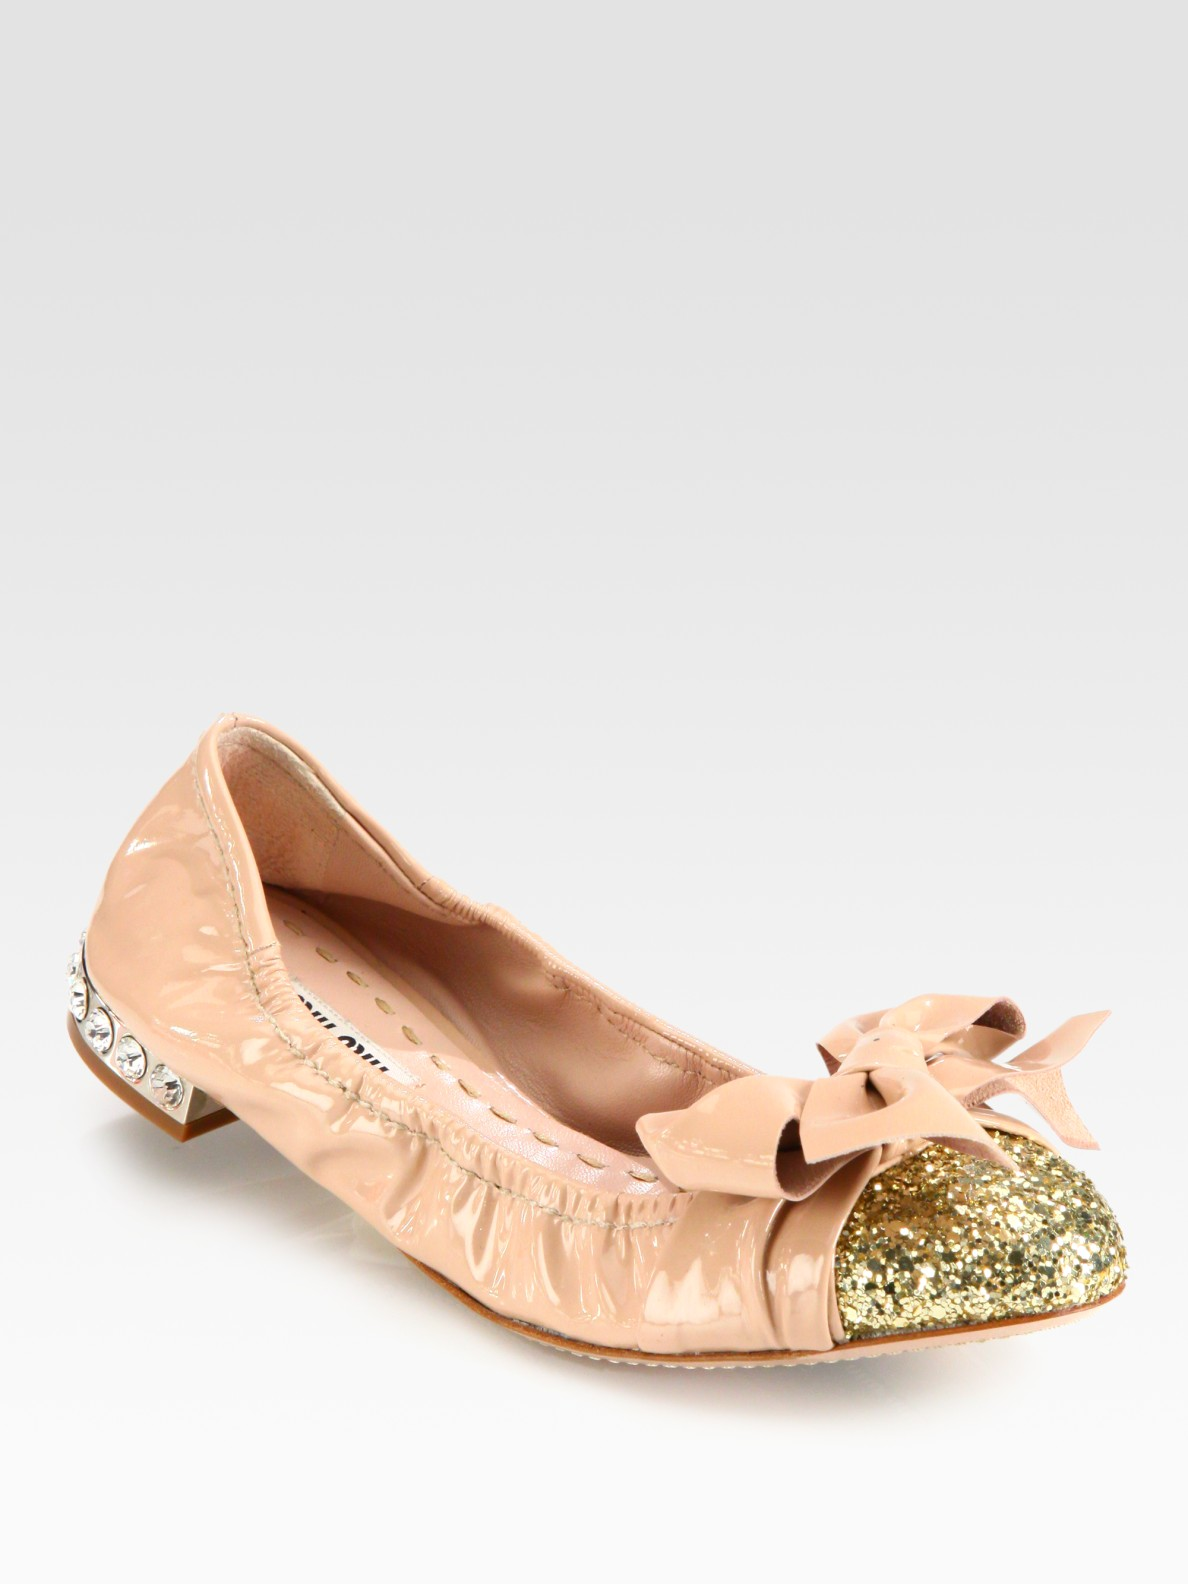 miu miu glitter patent leather bow ballet flats in beige nude lyst. Black Bedroom Furniture Sets. Home Design Ideas